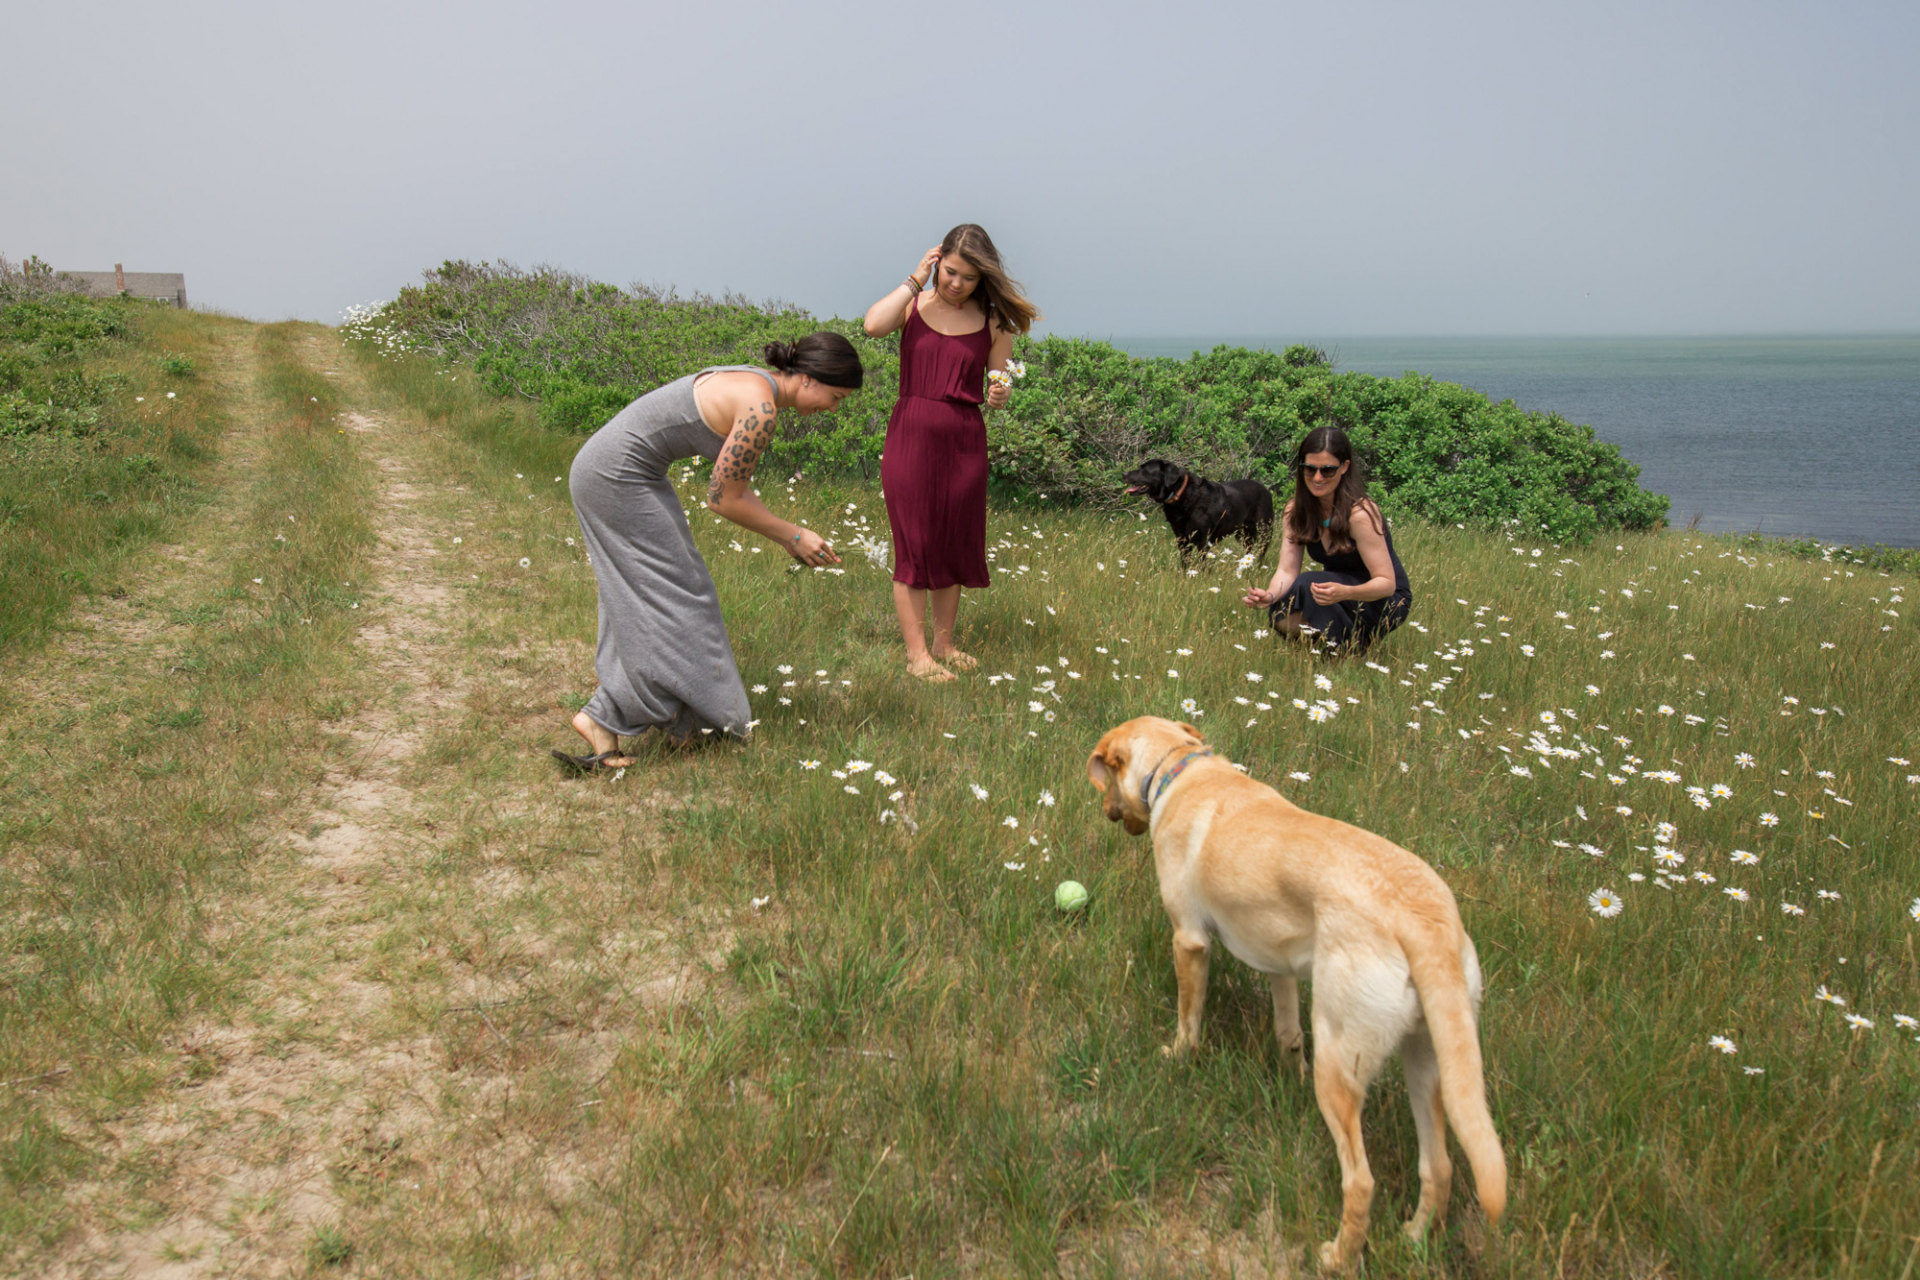 Picking Daisies for the elopement ceremony on Tuckernuck Island, MA